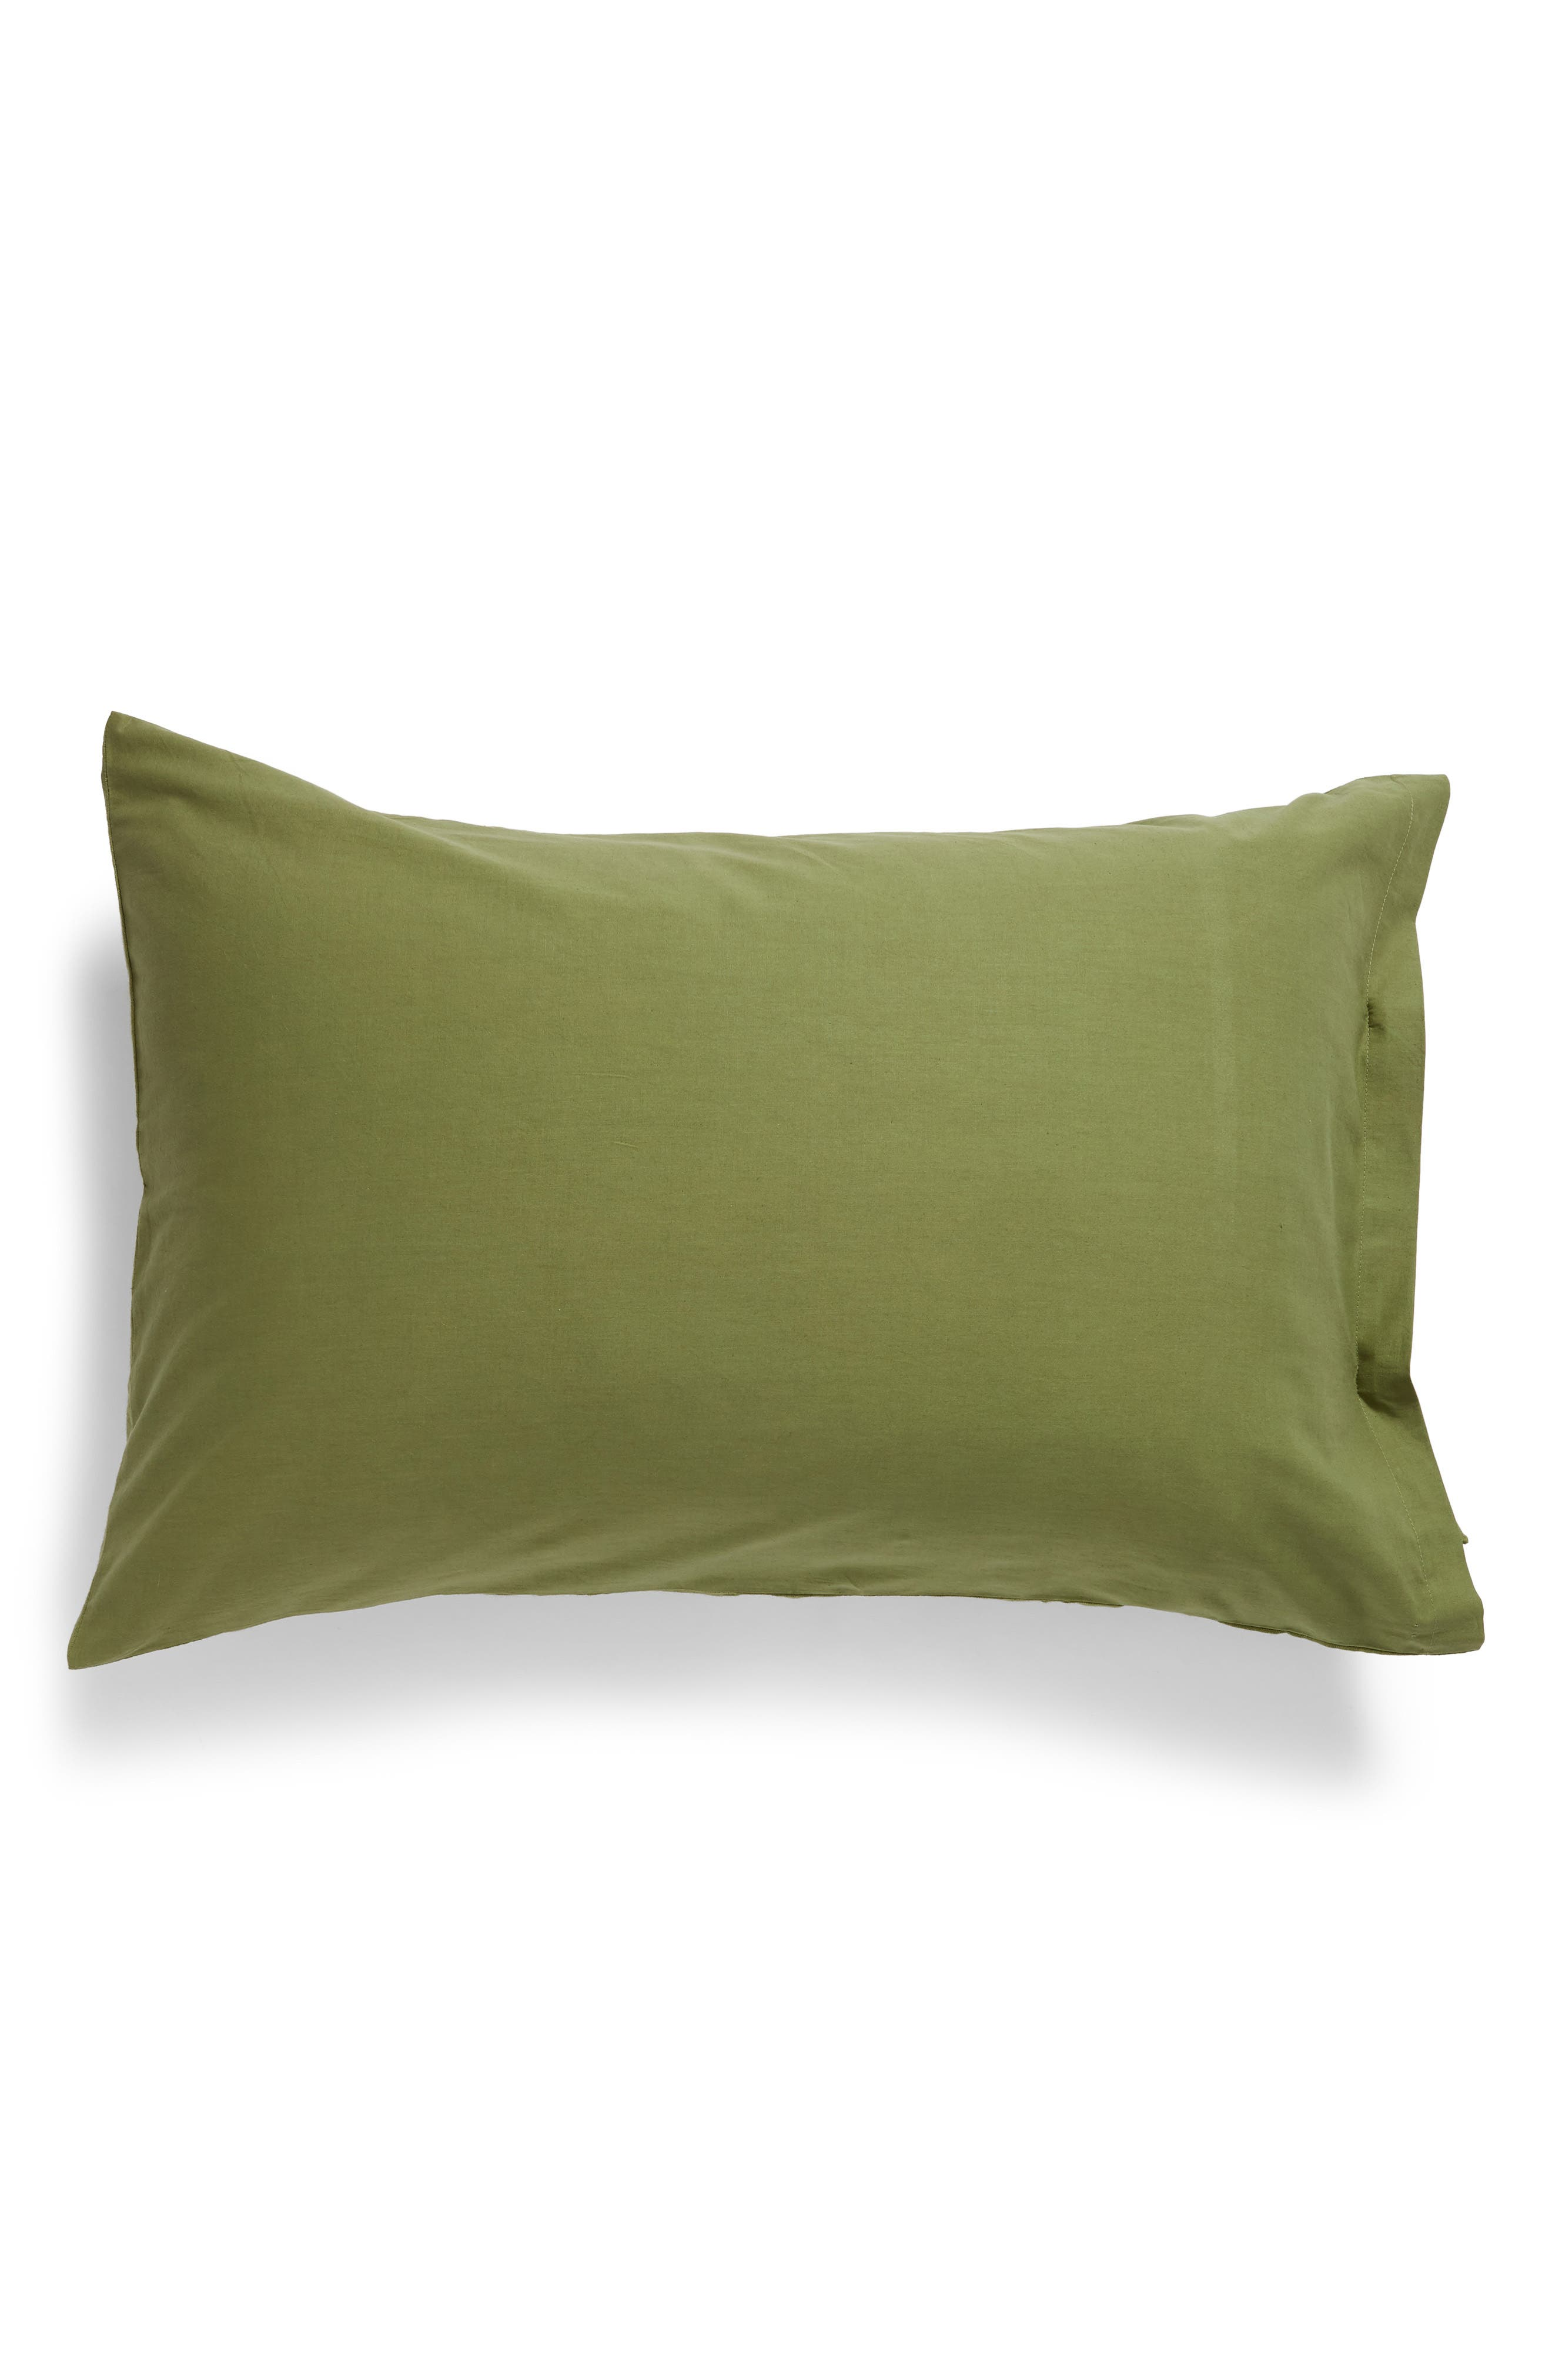 TREASURE & BOND, Relaxed Cotton & Linen Sham, Alternate thumbnail 2, color, OLIVE SPICE